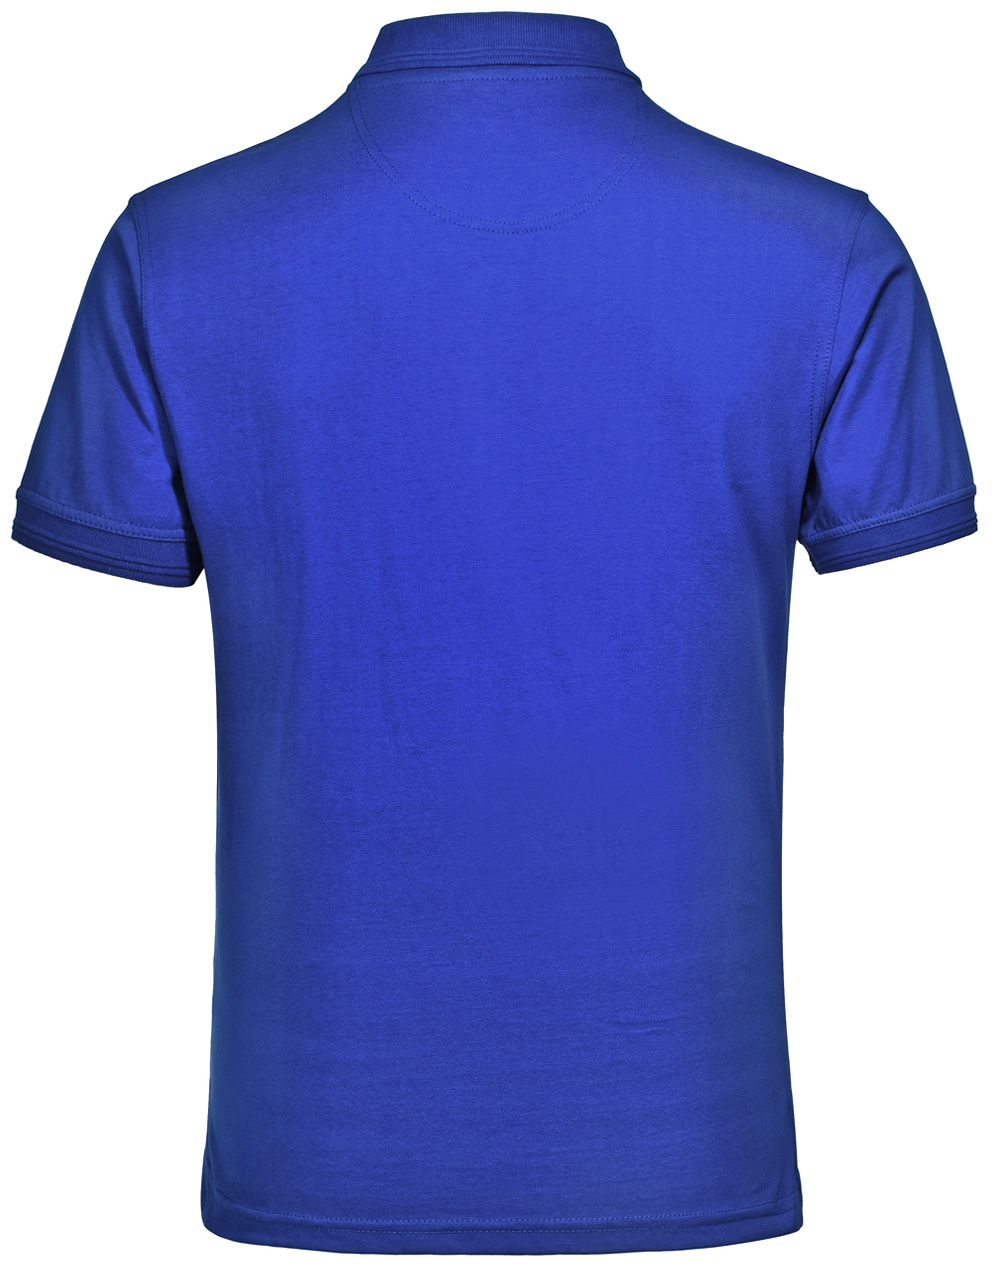 https://s3-ap-southeast-1.amazonaws.com/ws-imgs/POLOSHIRTS/PS05_Royal_Back_l.jpg